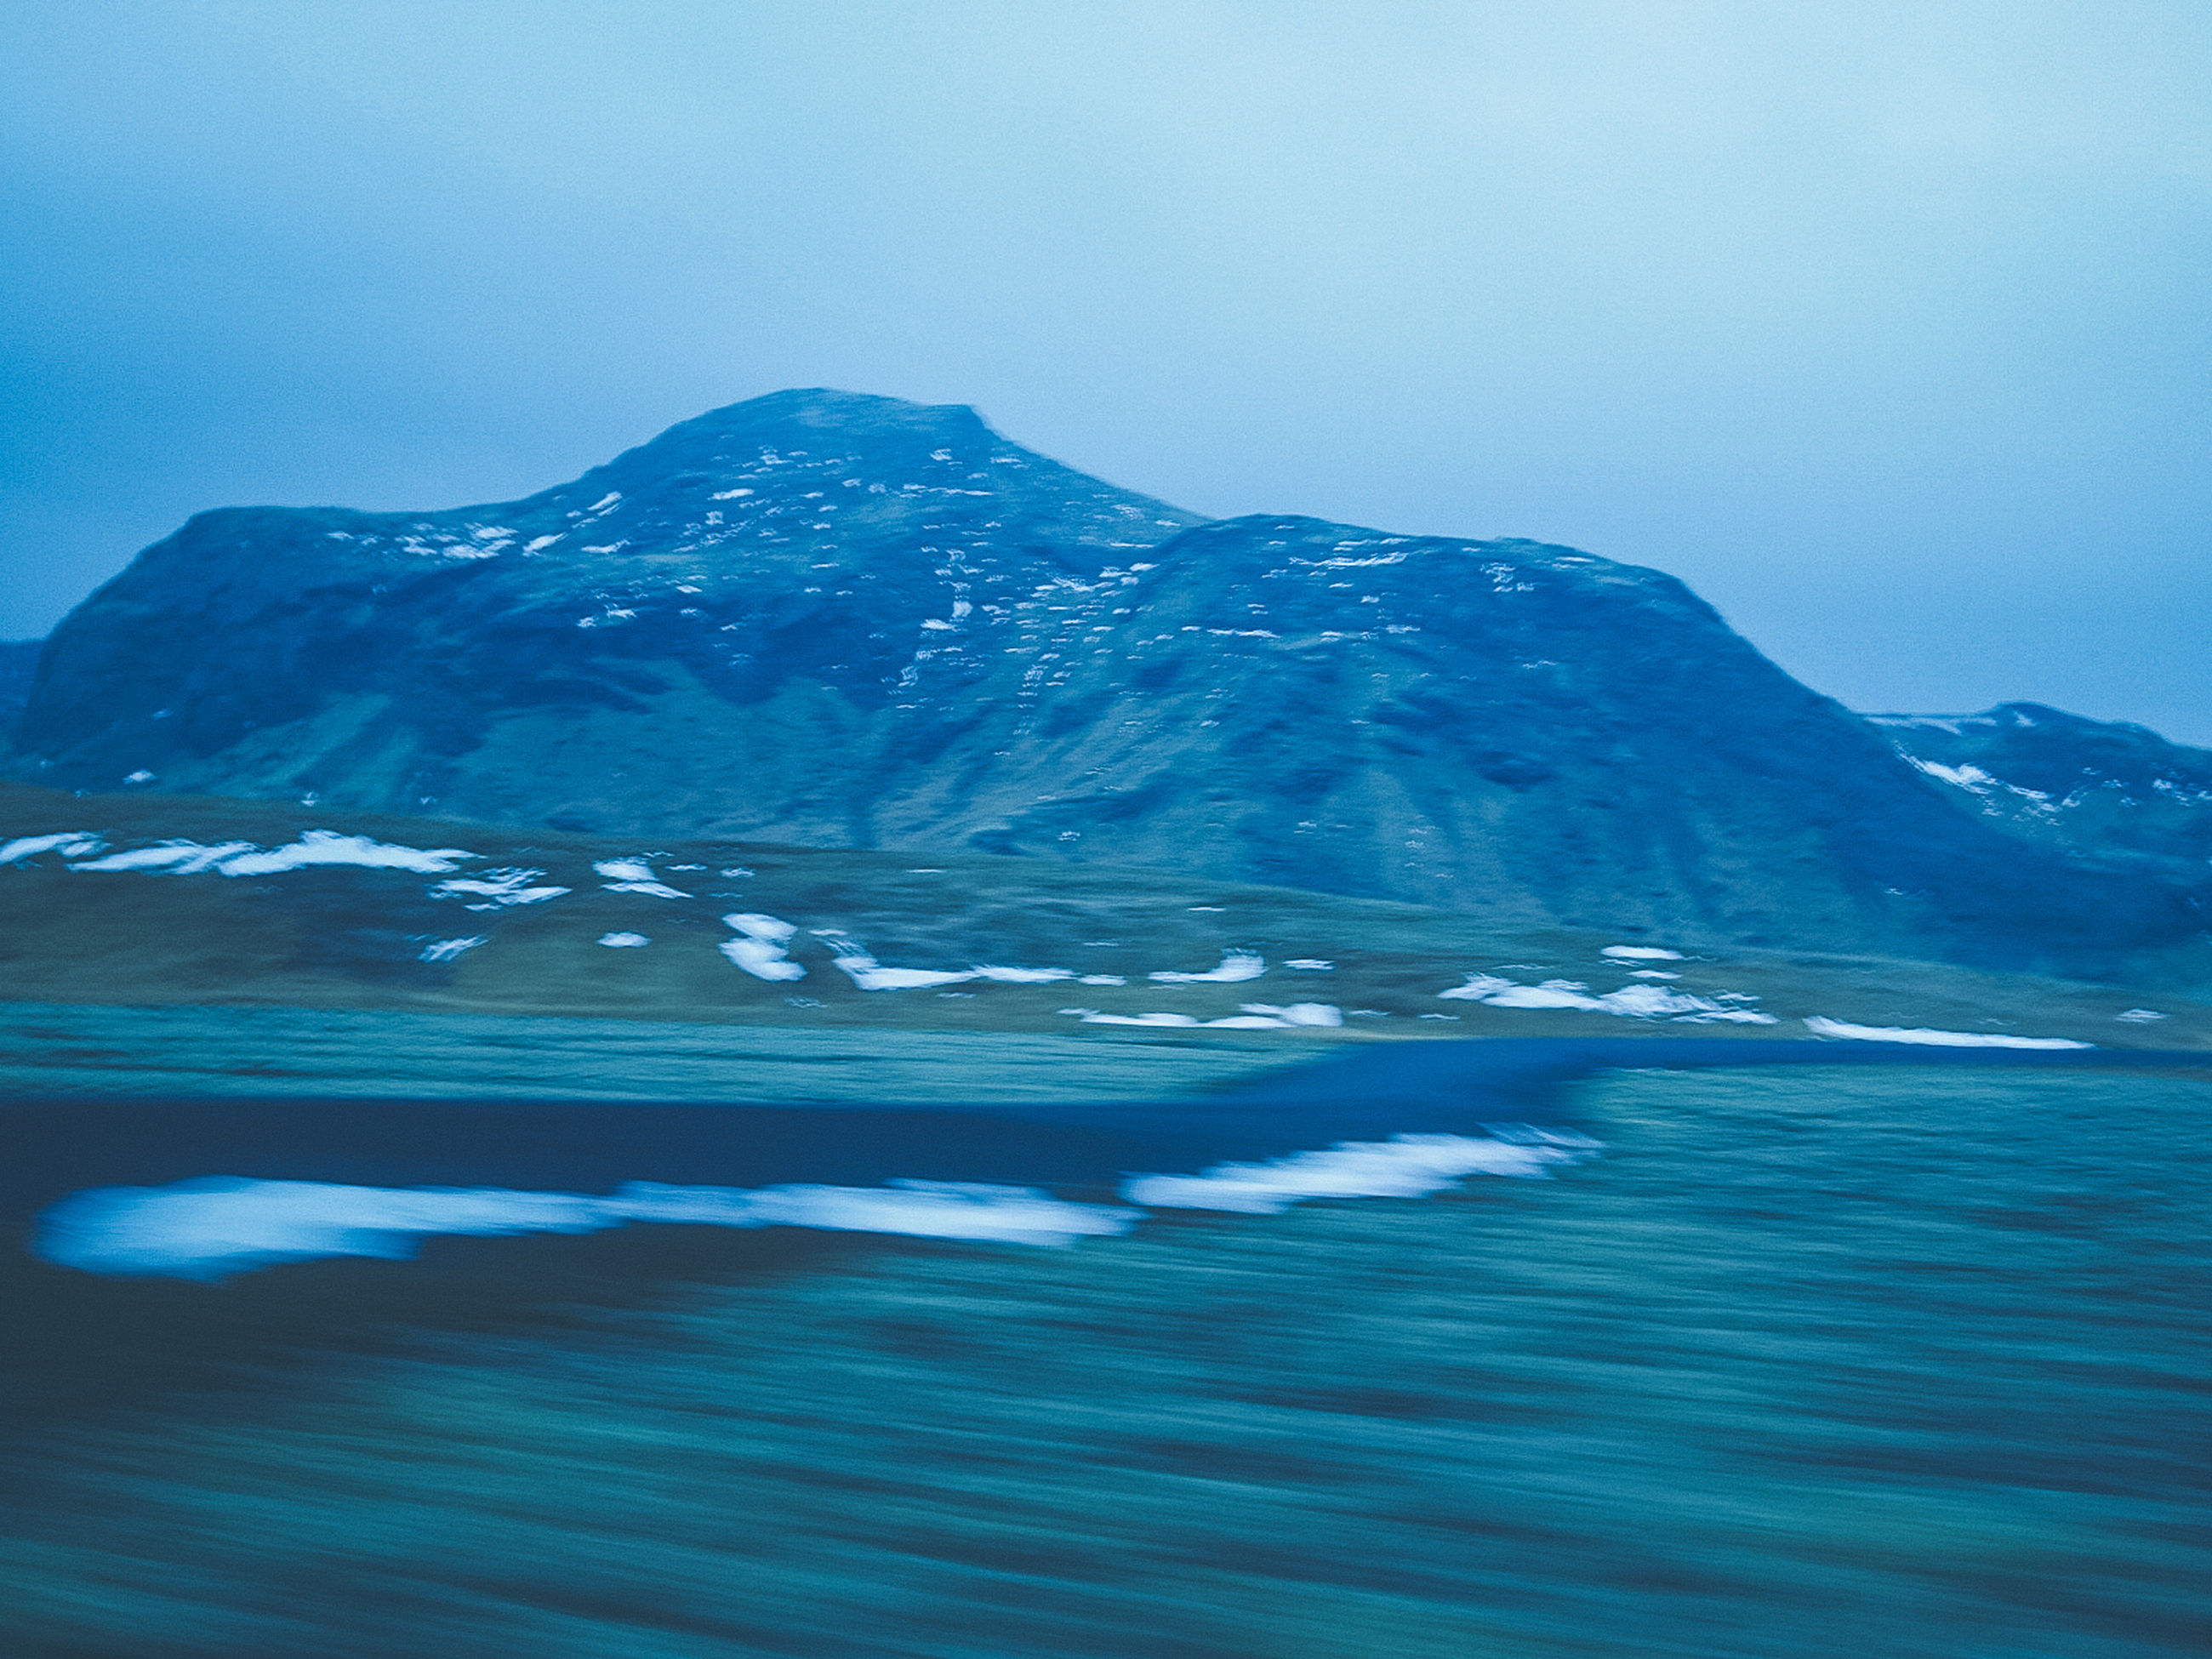 waterfront, mountain, beauty in nature, scenics - nature, water, sky, tranquility, tranquil scene, nature, no people, sea, non-urban scene, day, idyllic, outdoors, cold temperature, winter, blue, motion, mountain peak, snowcapped mountain, purity